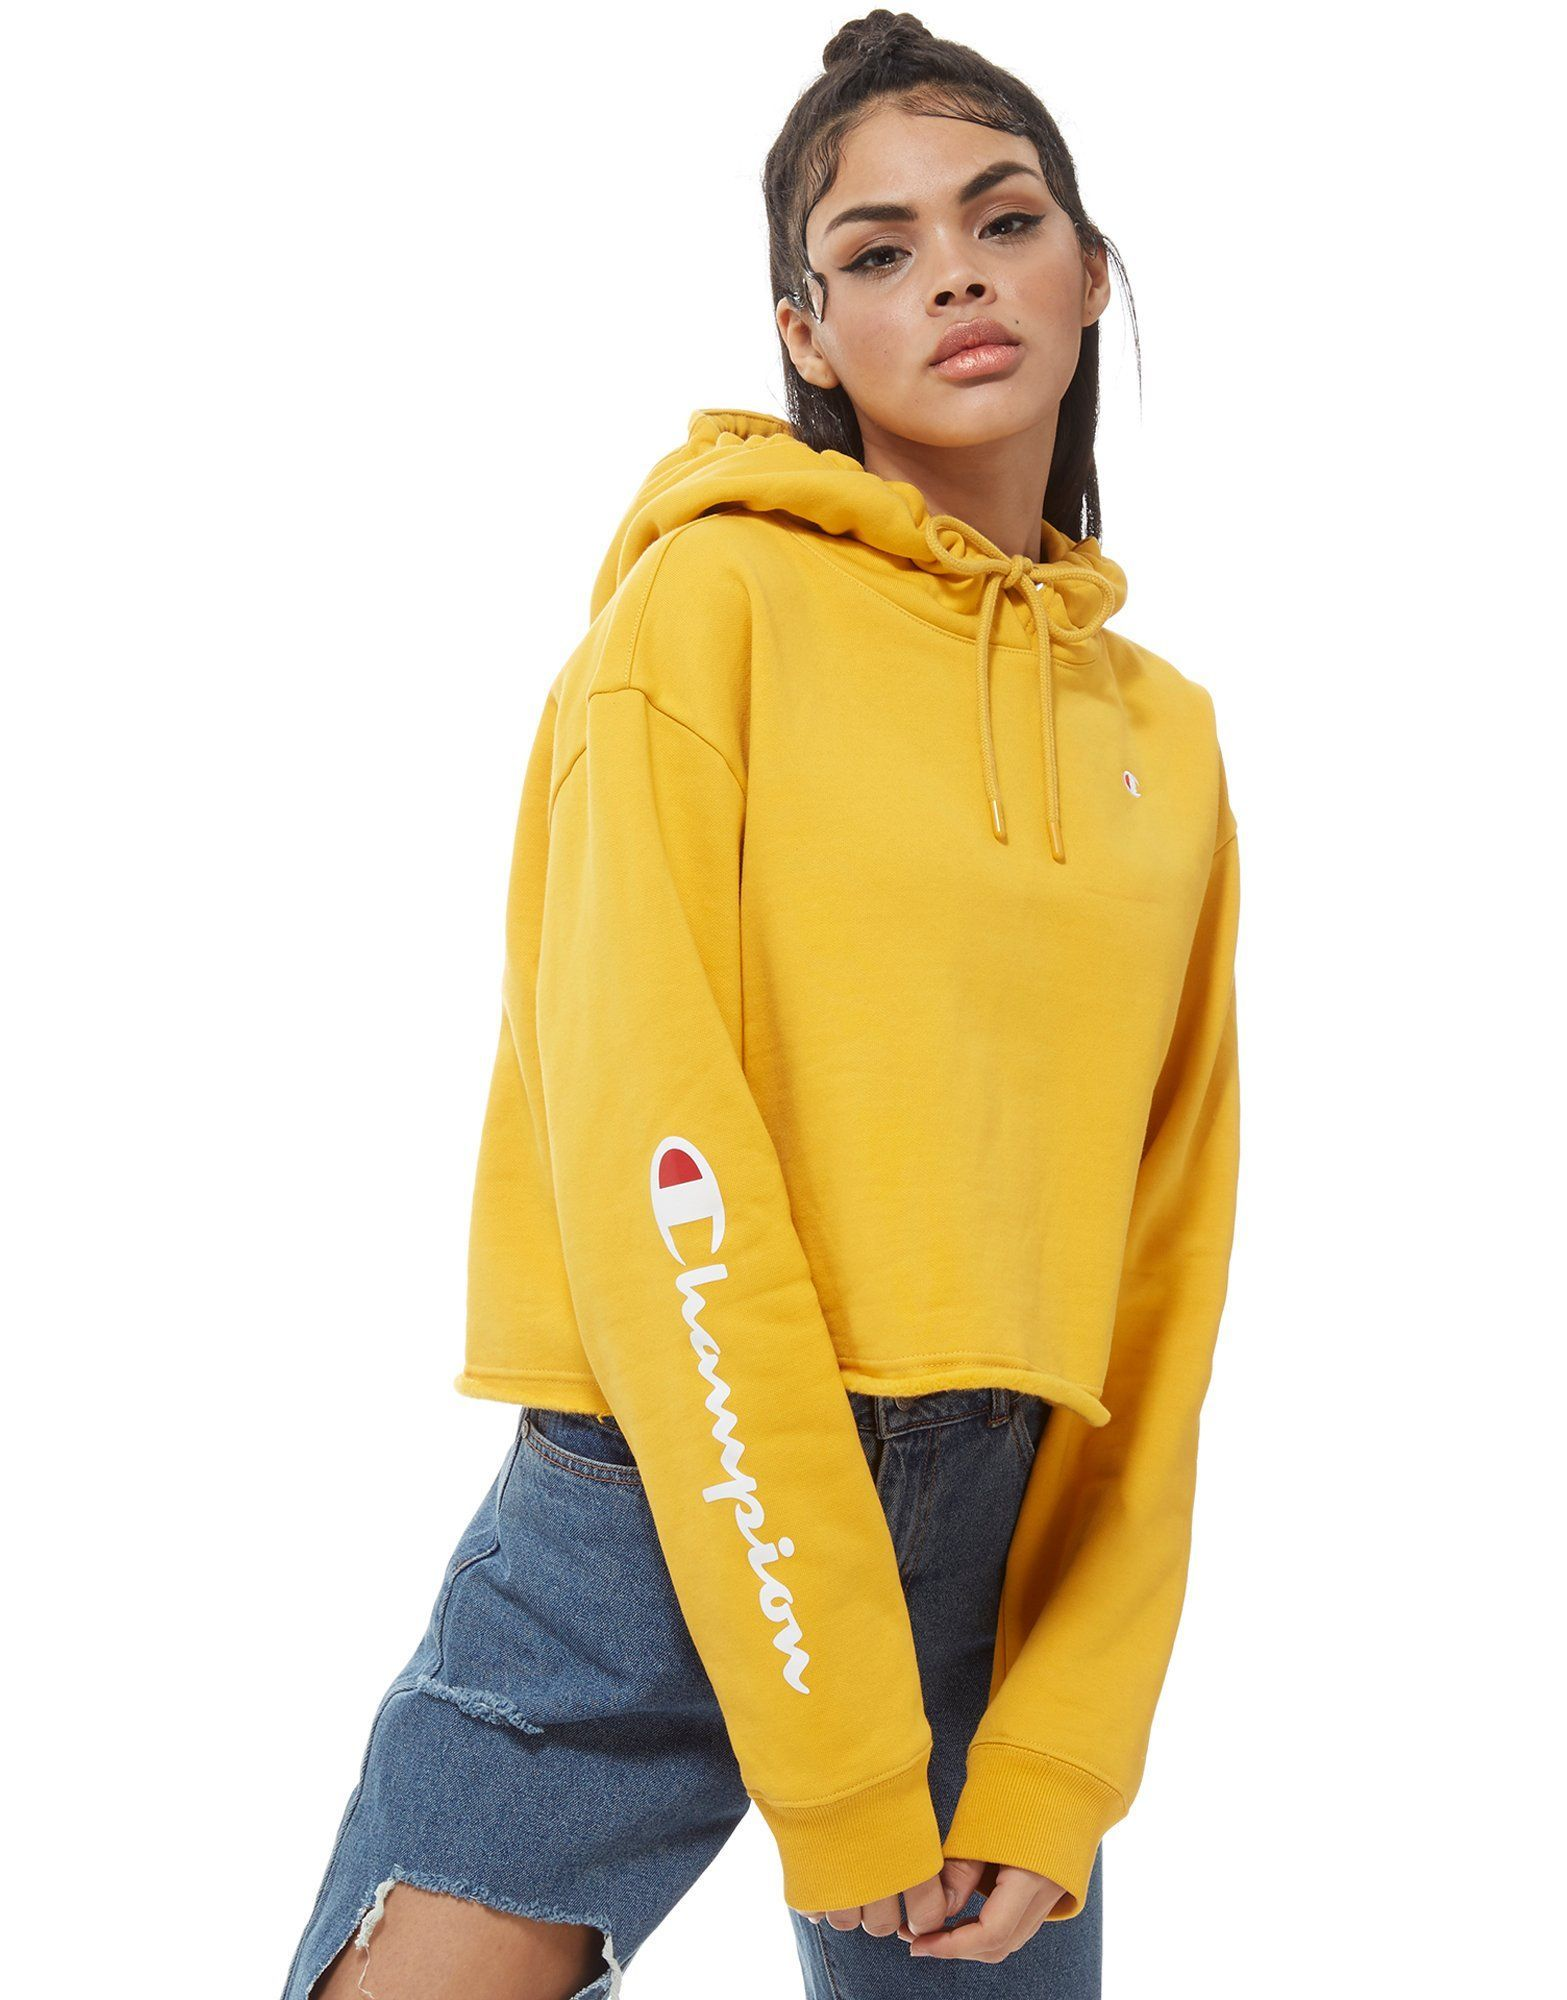 Champion Logo Sleeve Crop Hoodie Shop Online For Champion Logo Sleeve Crop Hoodie With Jd Sports The Champion Clothing Cropped Hoodie Yellow Champion Hoodie [ 2000 x 1567 Pixel ]